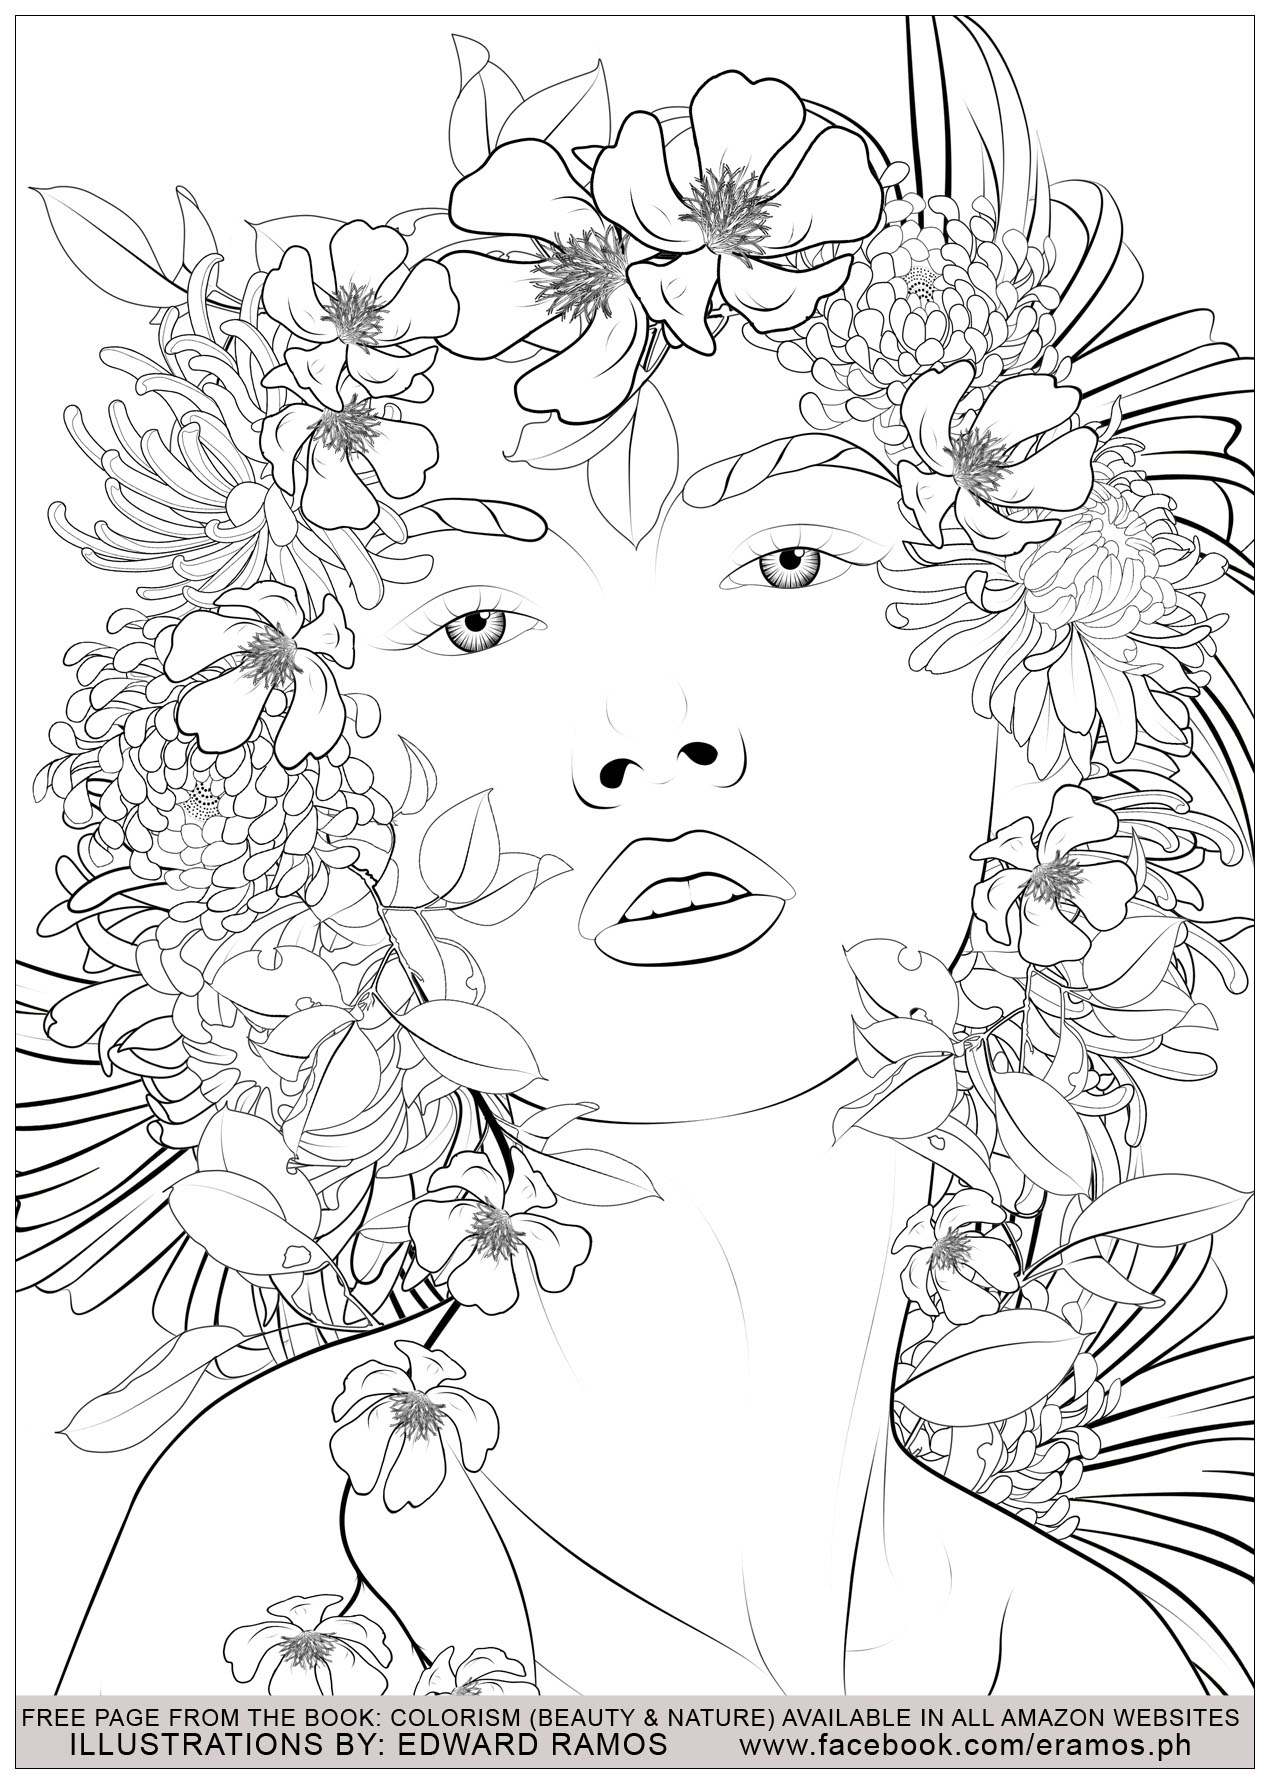 Illustration from the book Colorism - Beauty & Nature by Edward Ramos - 6